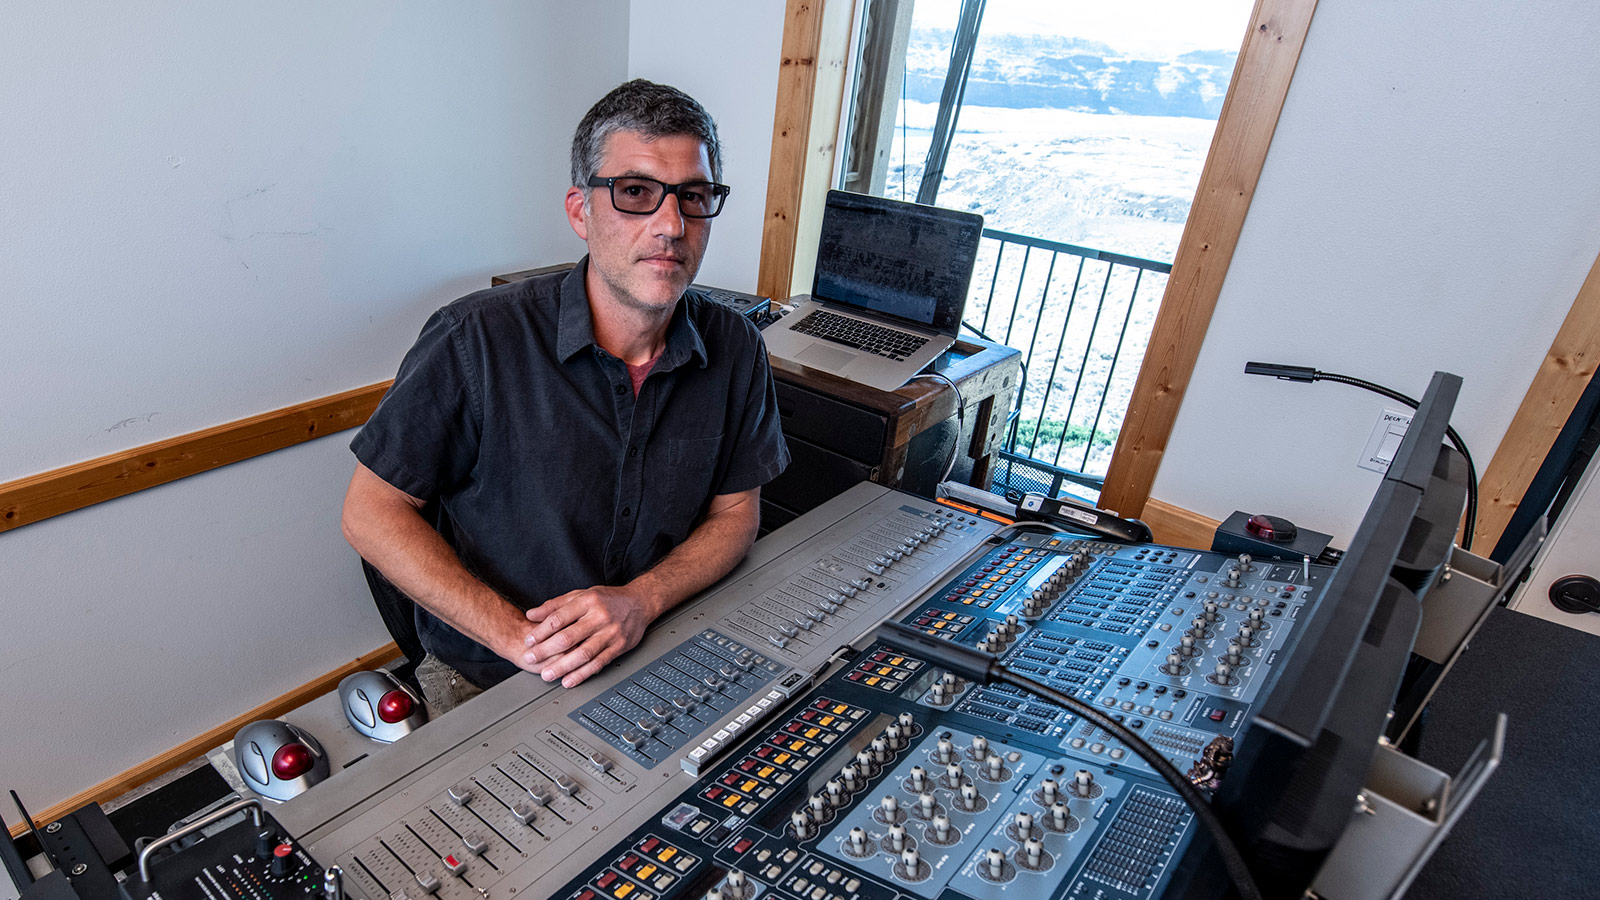 Jeff Thomas, FOH Engineer, Dave Matthews Band